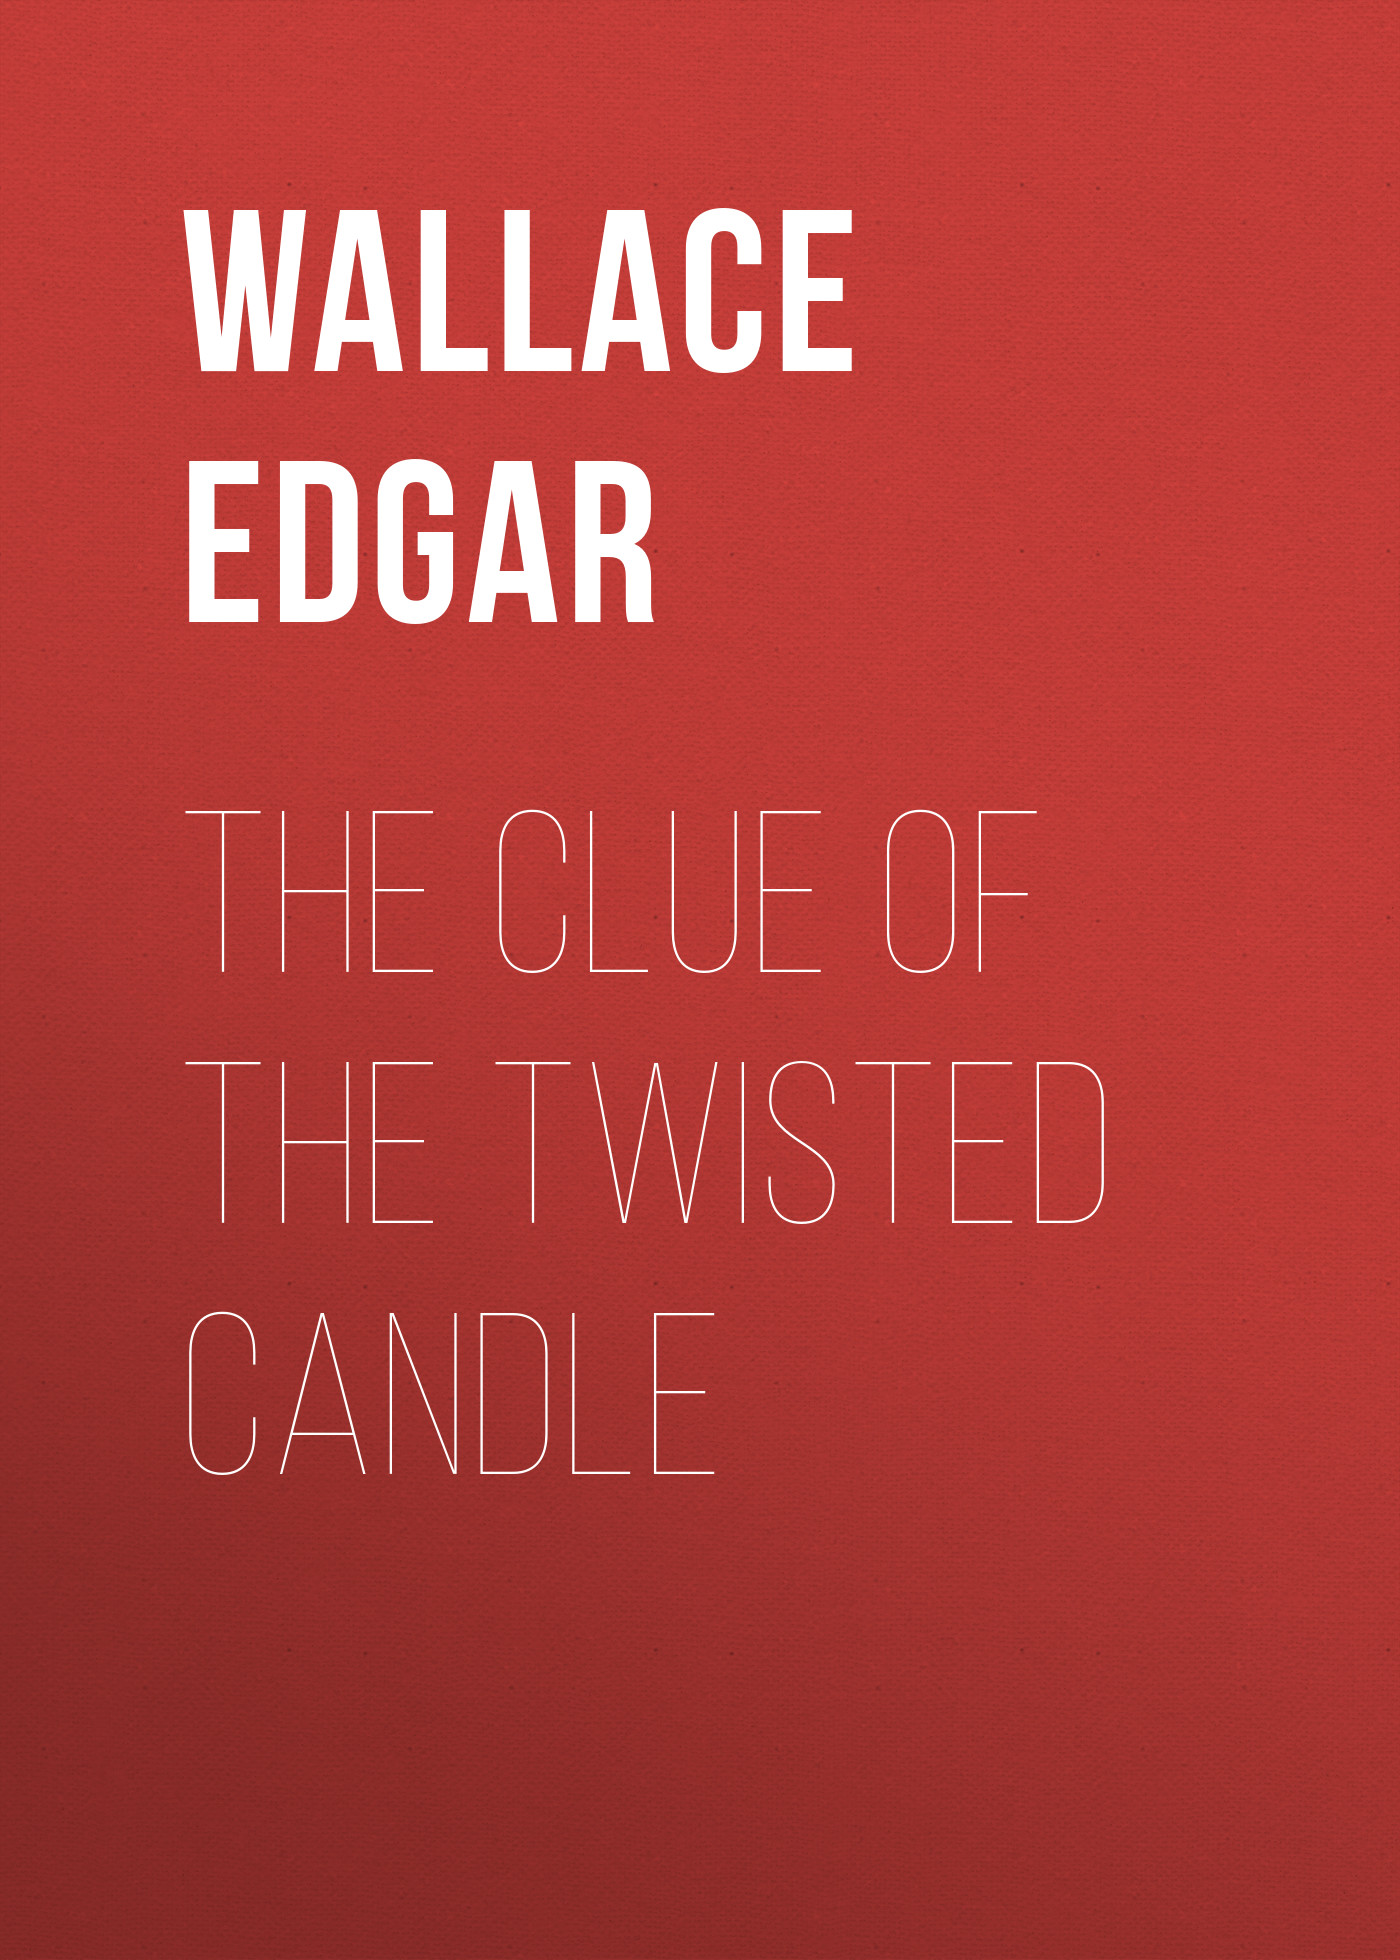 Wallace Edgar The Clue of the Twisted Candle esoteric crossword clue